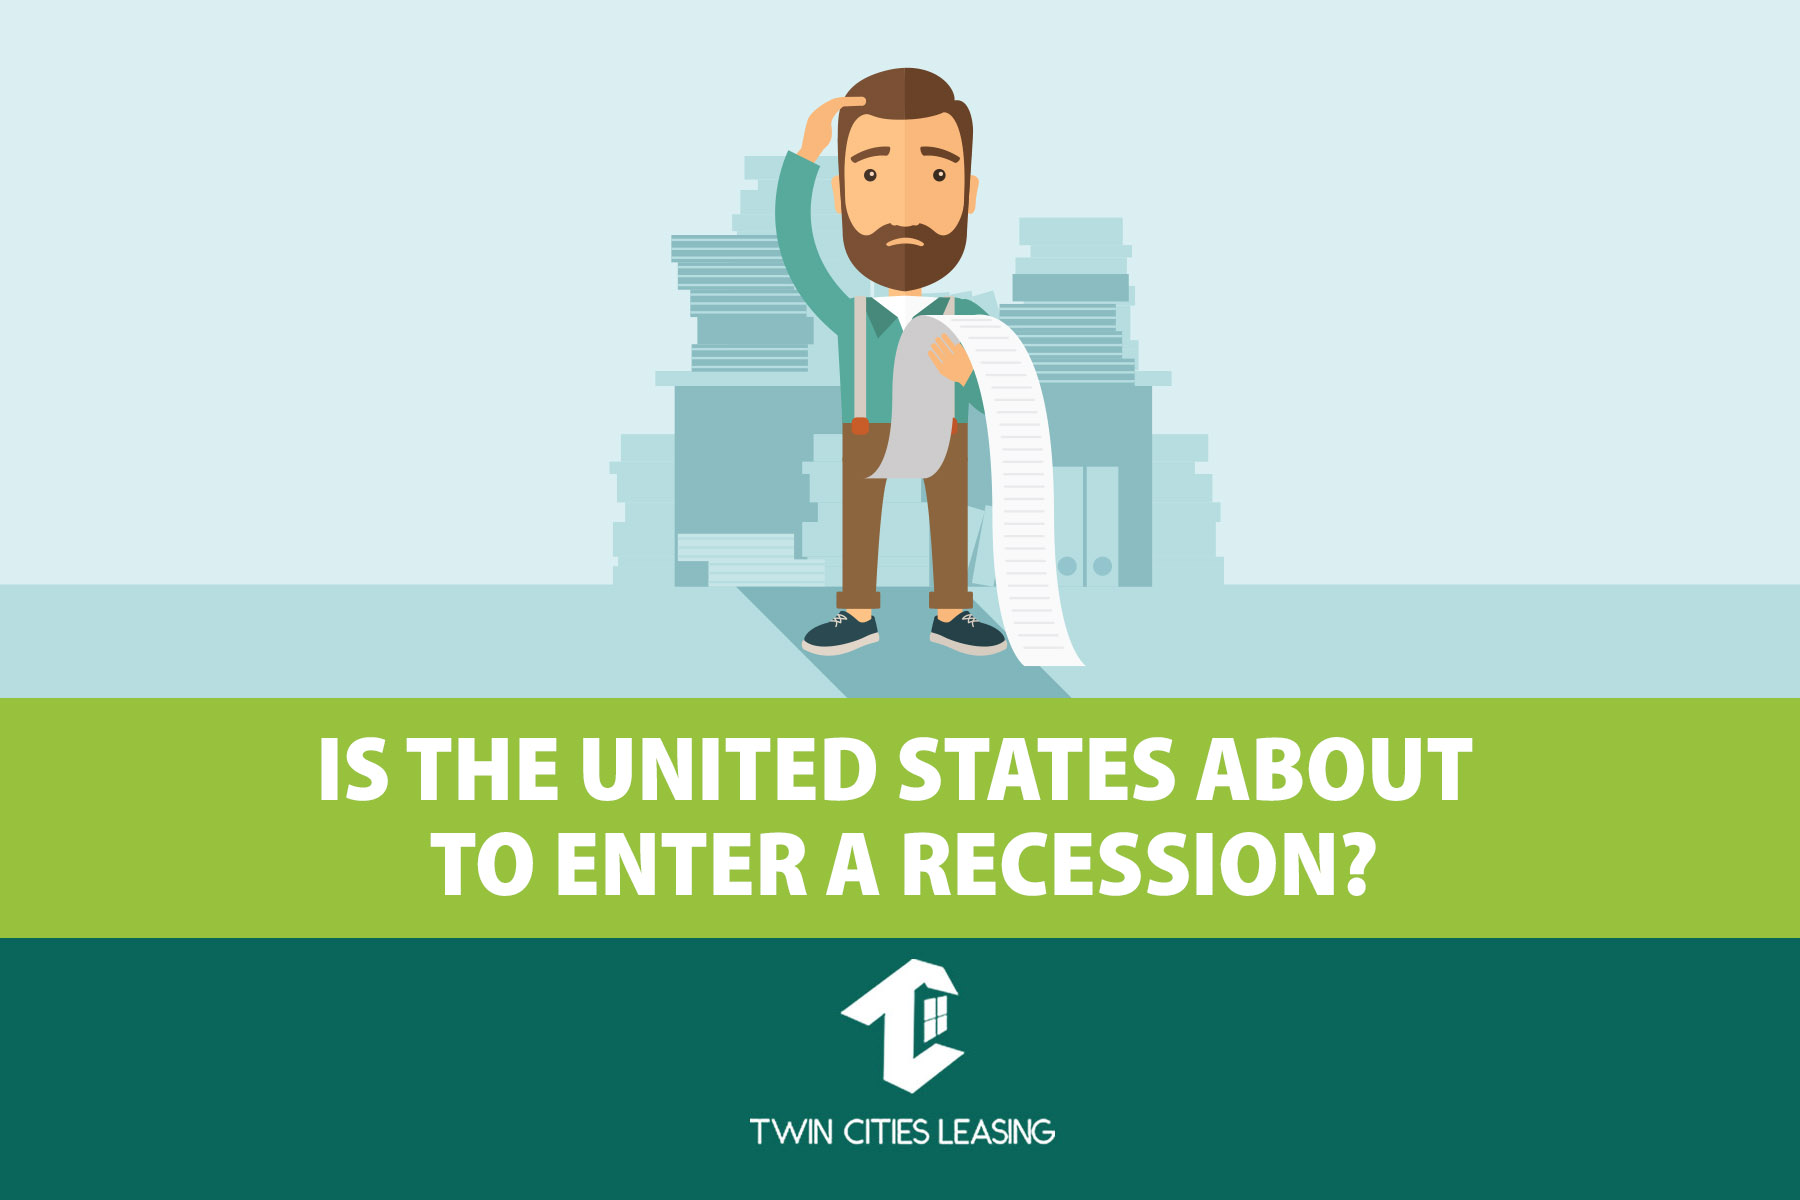 Is the United States About to Enter a Recession?